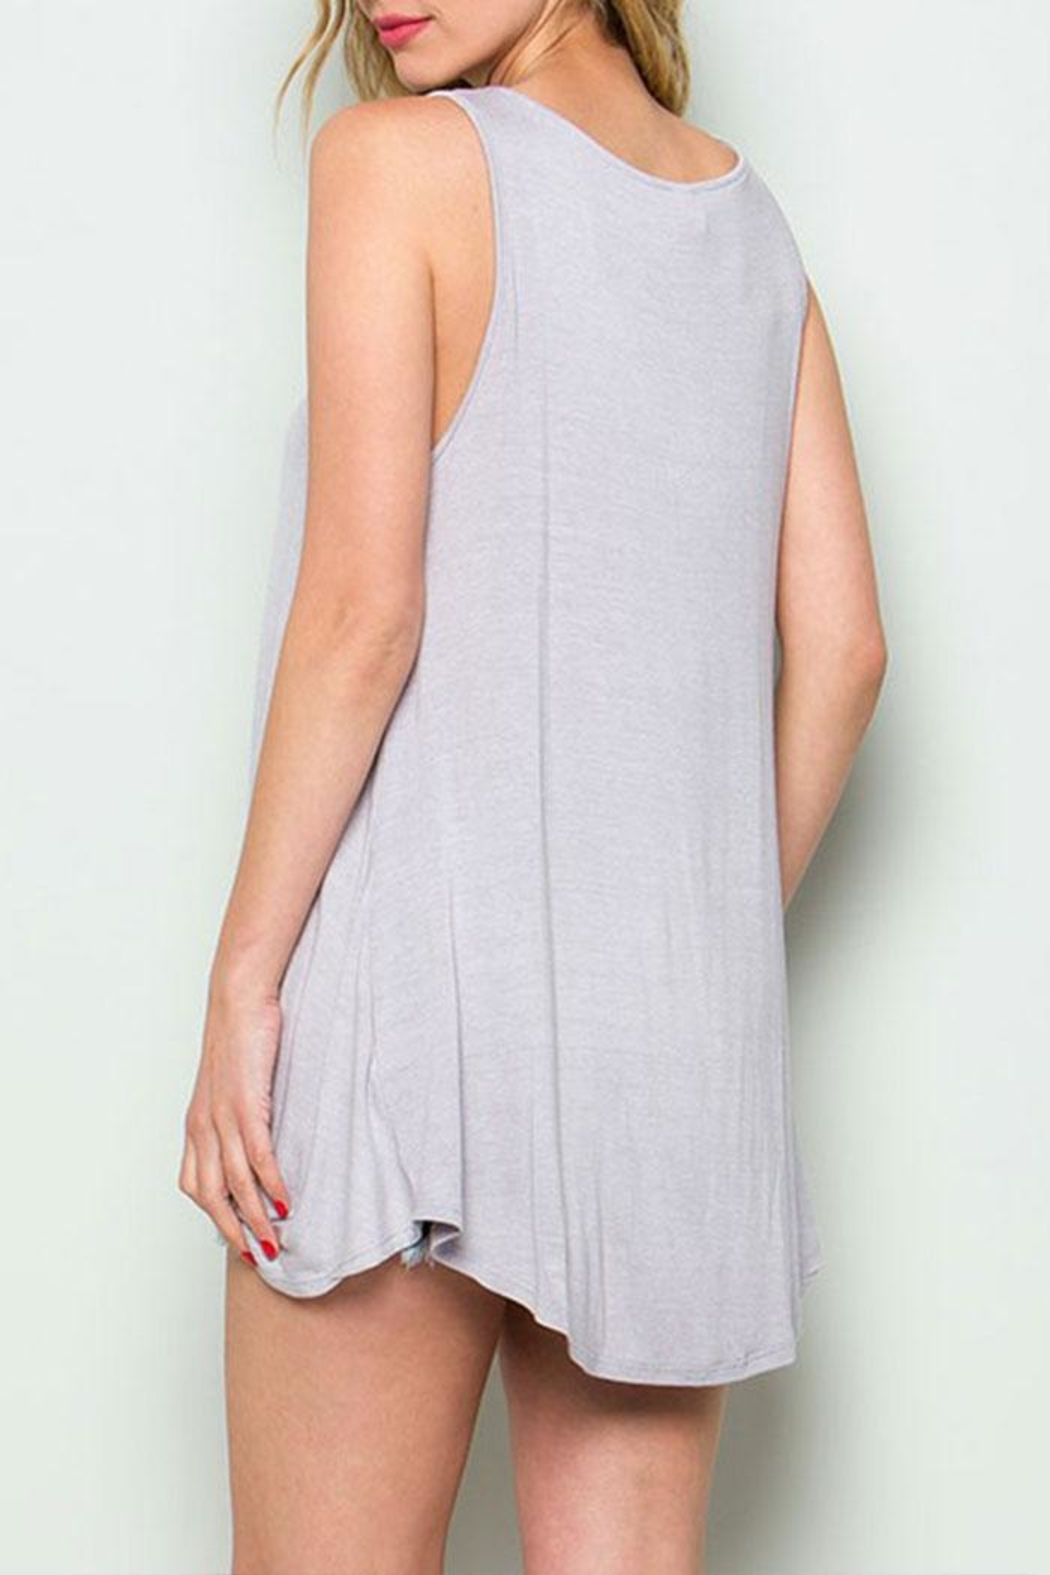 CY Fashion Cage Detail Sleeveless-Top - Side Cropped Image